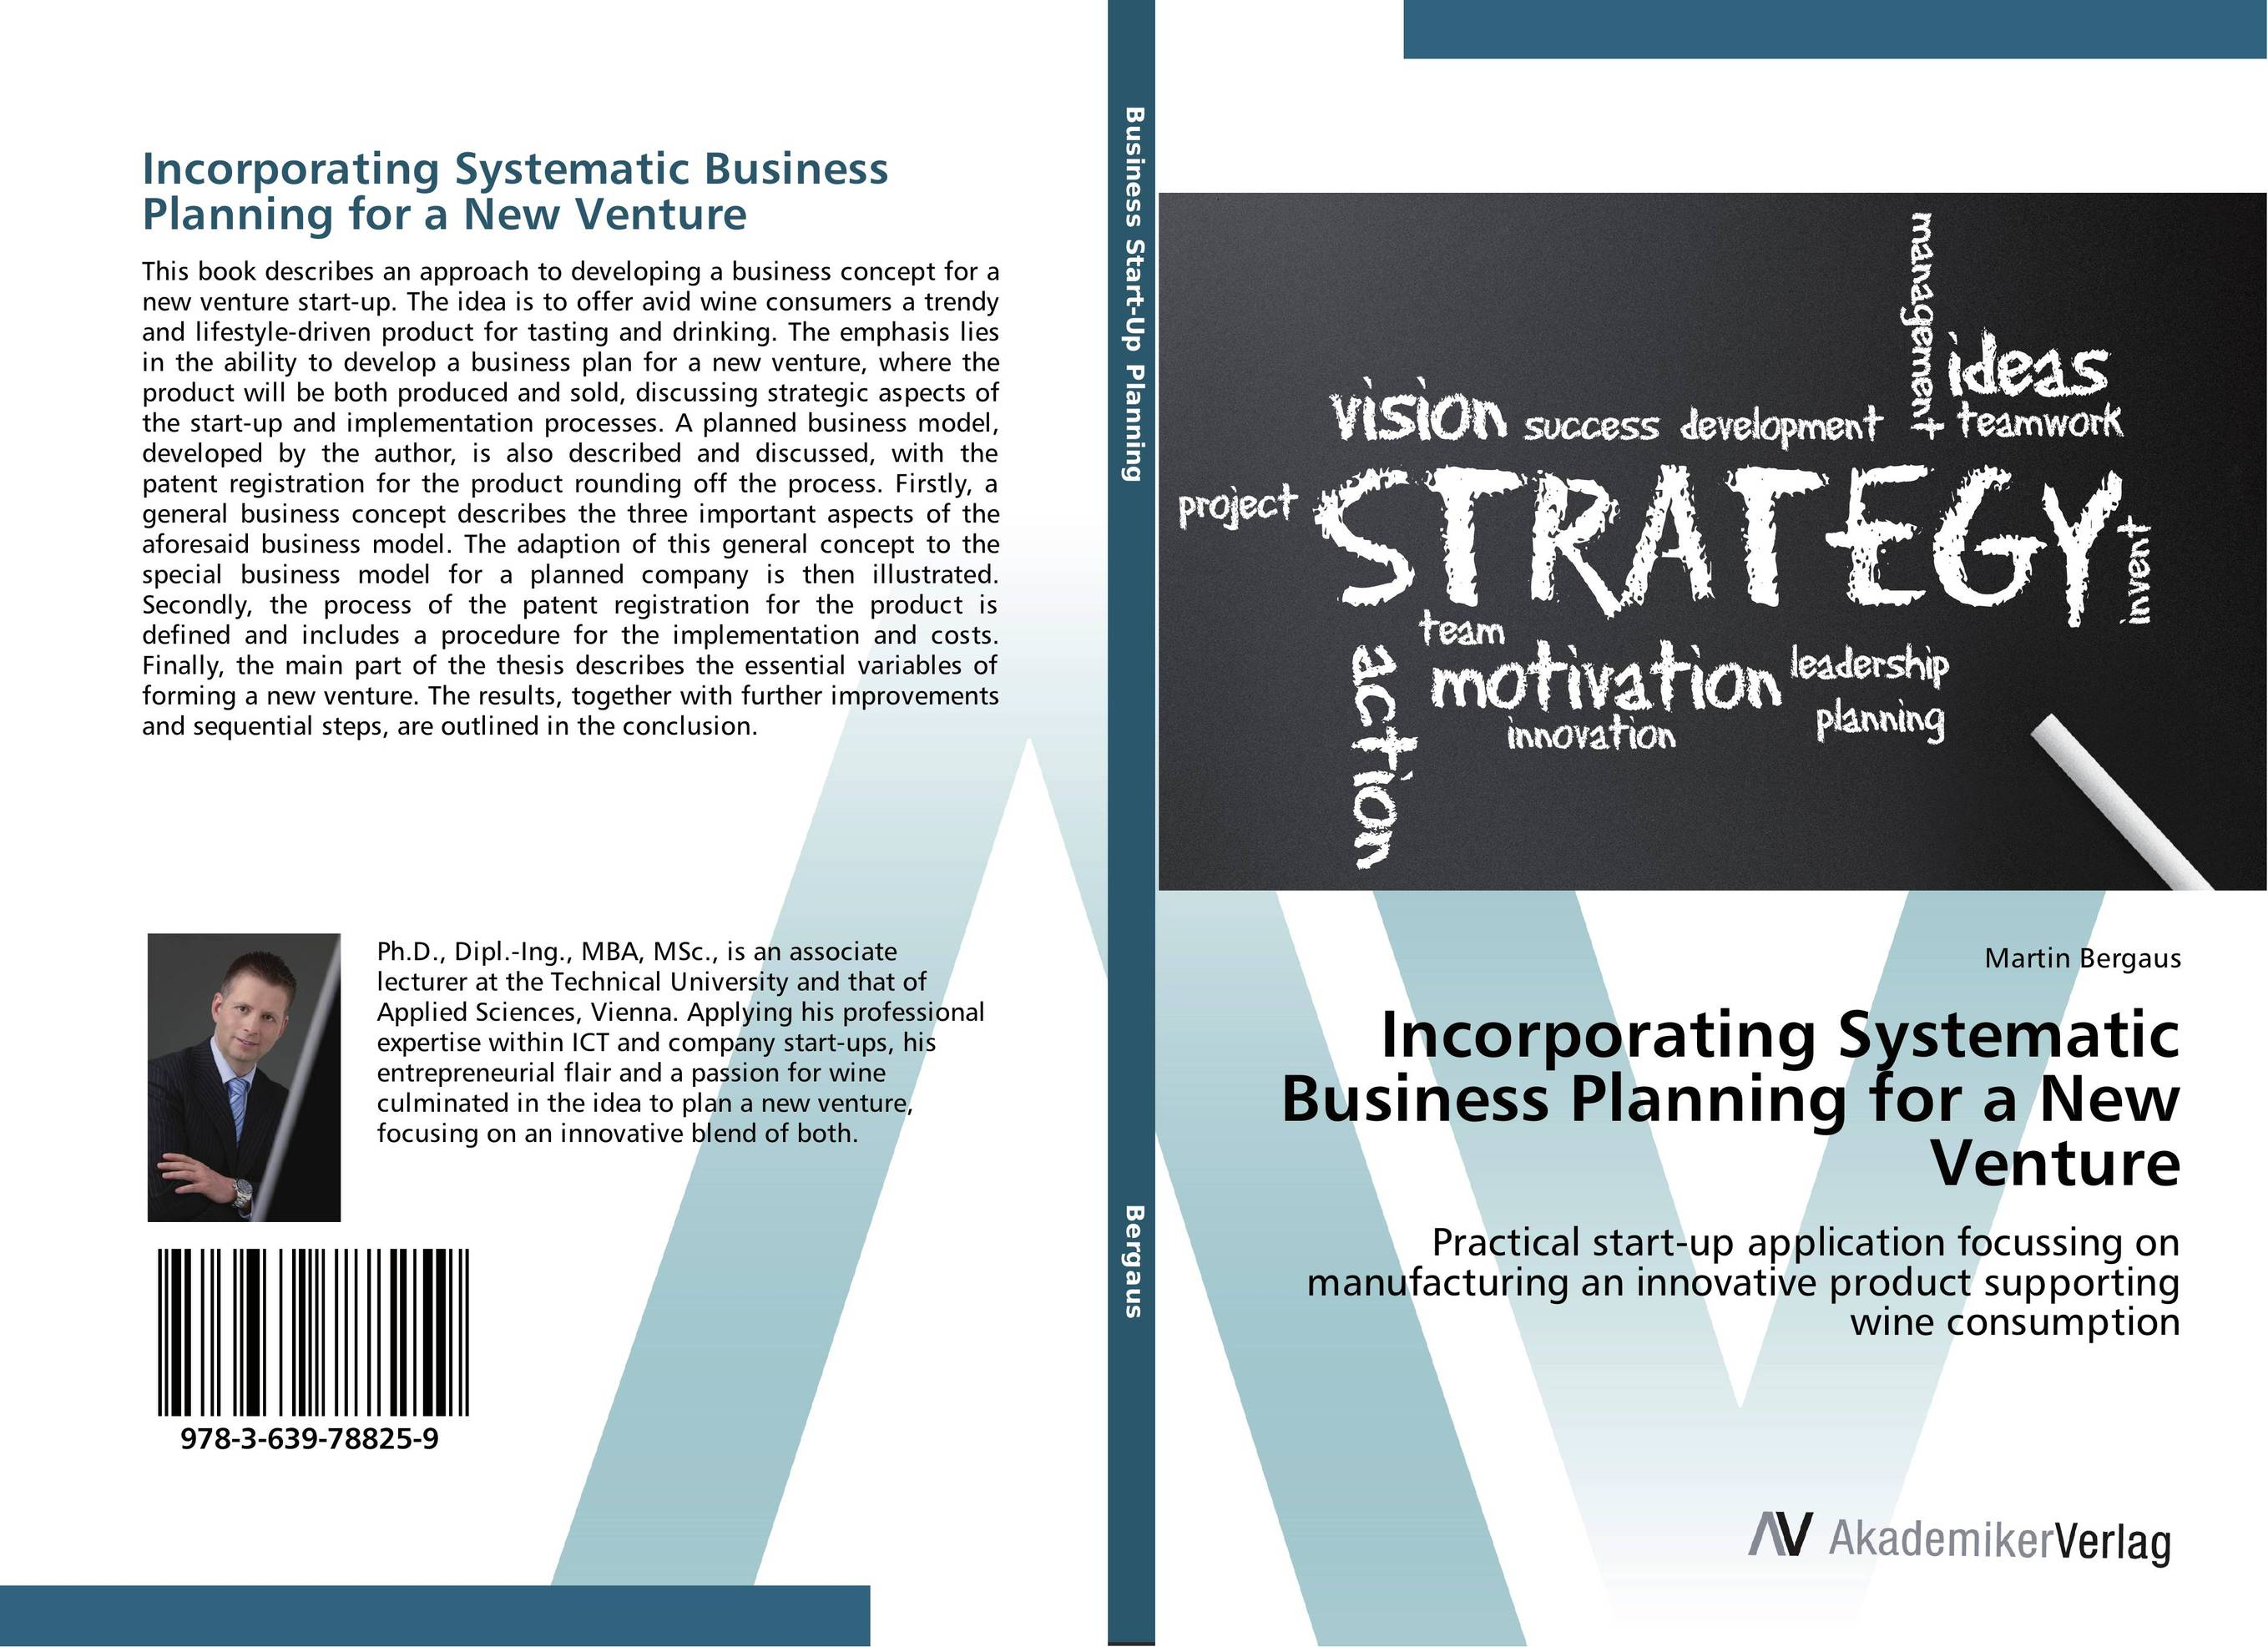 Incorporating Systematic Business Planning for a New Venture marc lane j the mission driven venture business solutions to the world s most vexing social problems